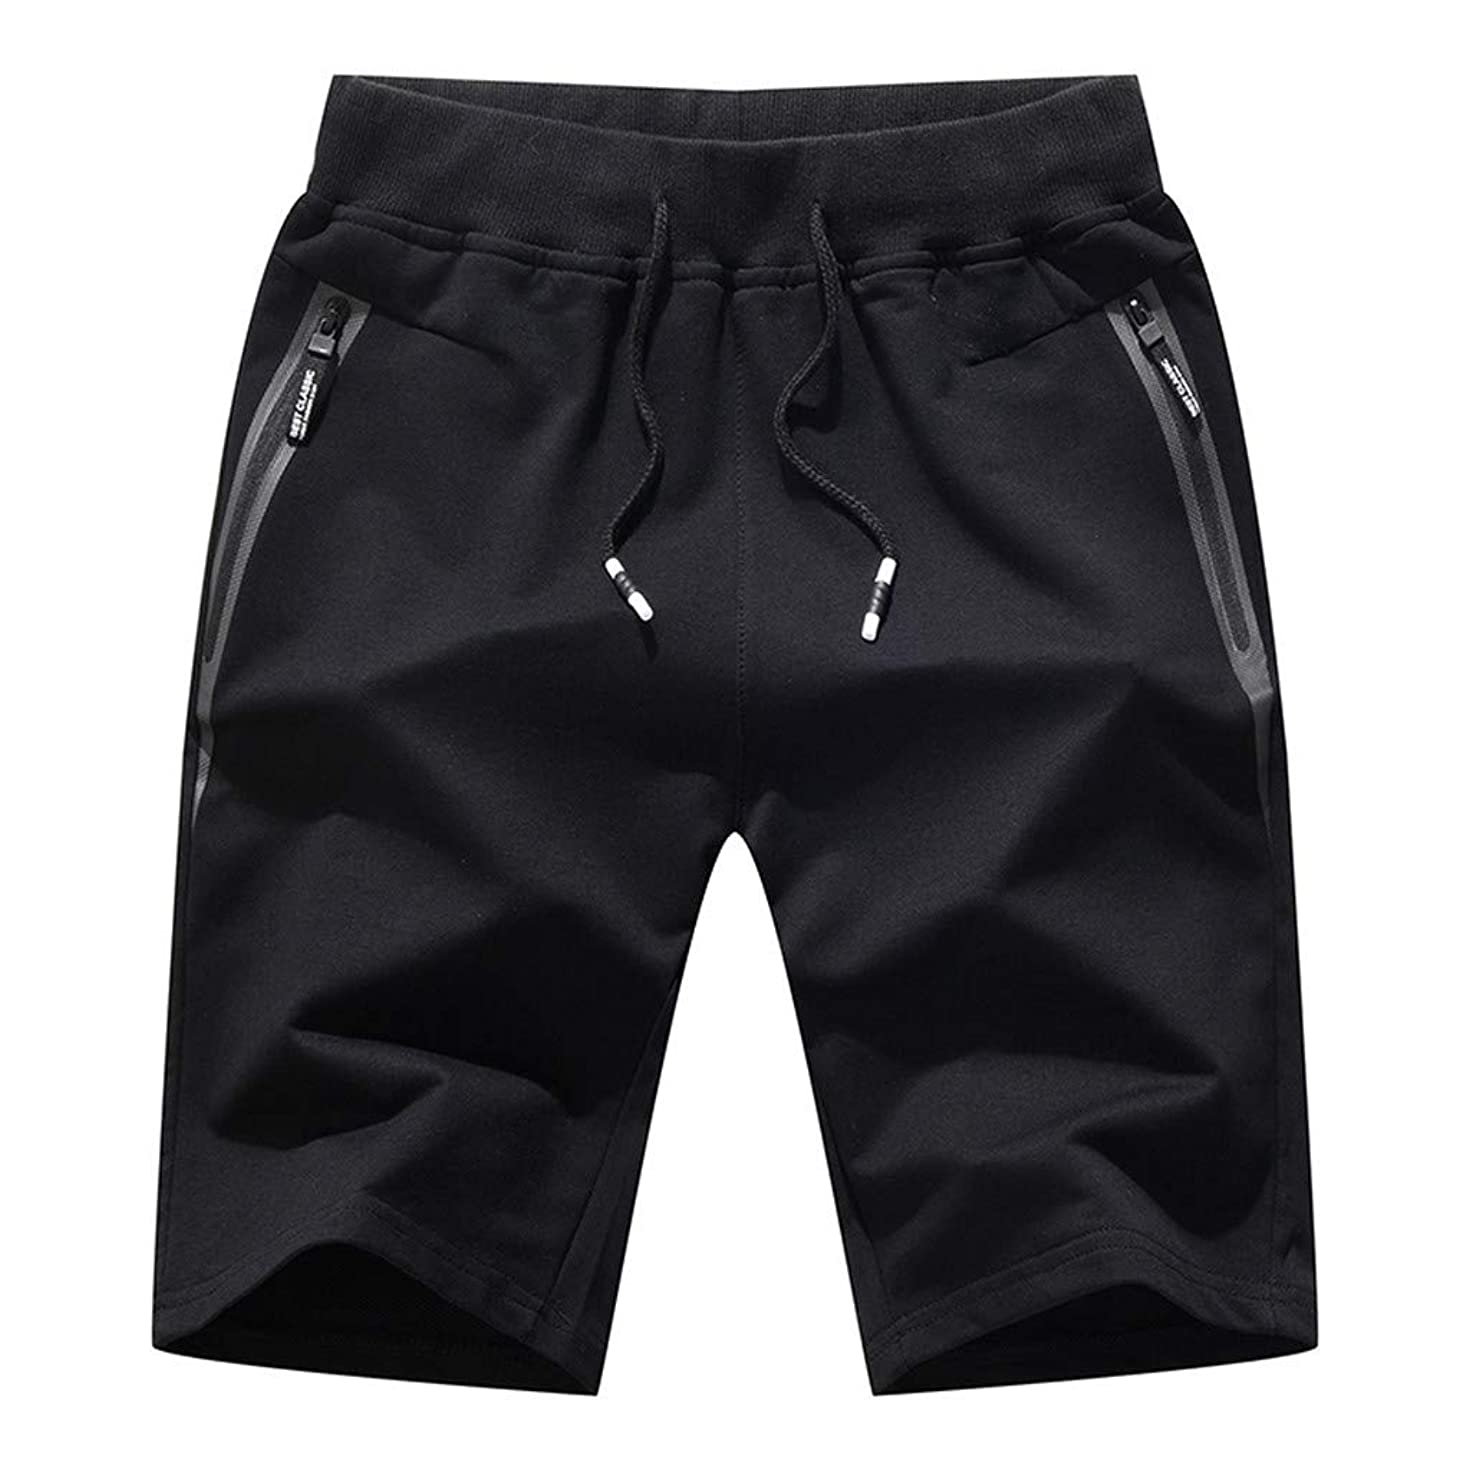 Sunhusing Men's Summer Knitted Sports Shorts Pure Color Cotton Blend Pocket Casual Beach Shorts